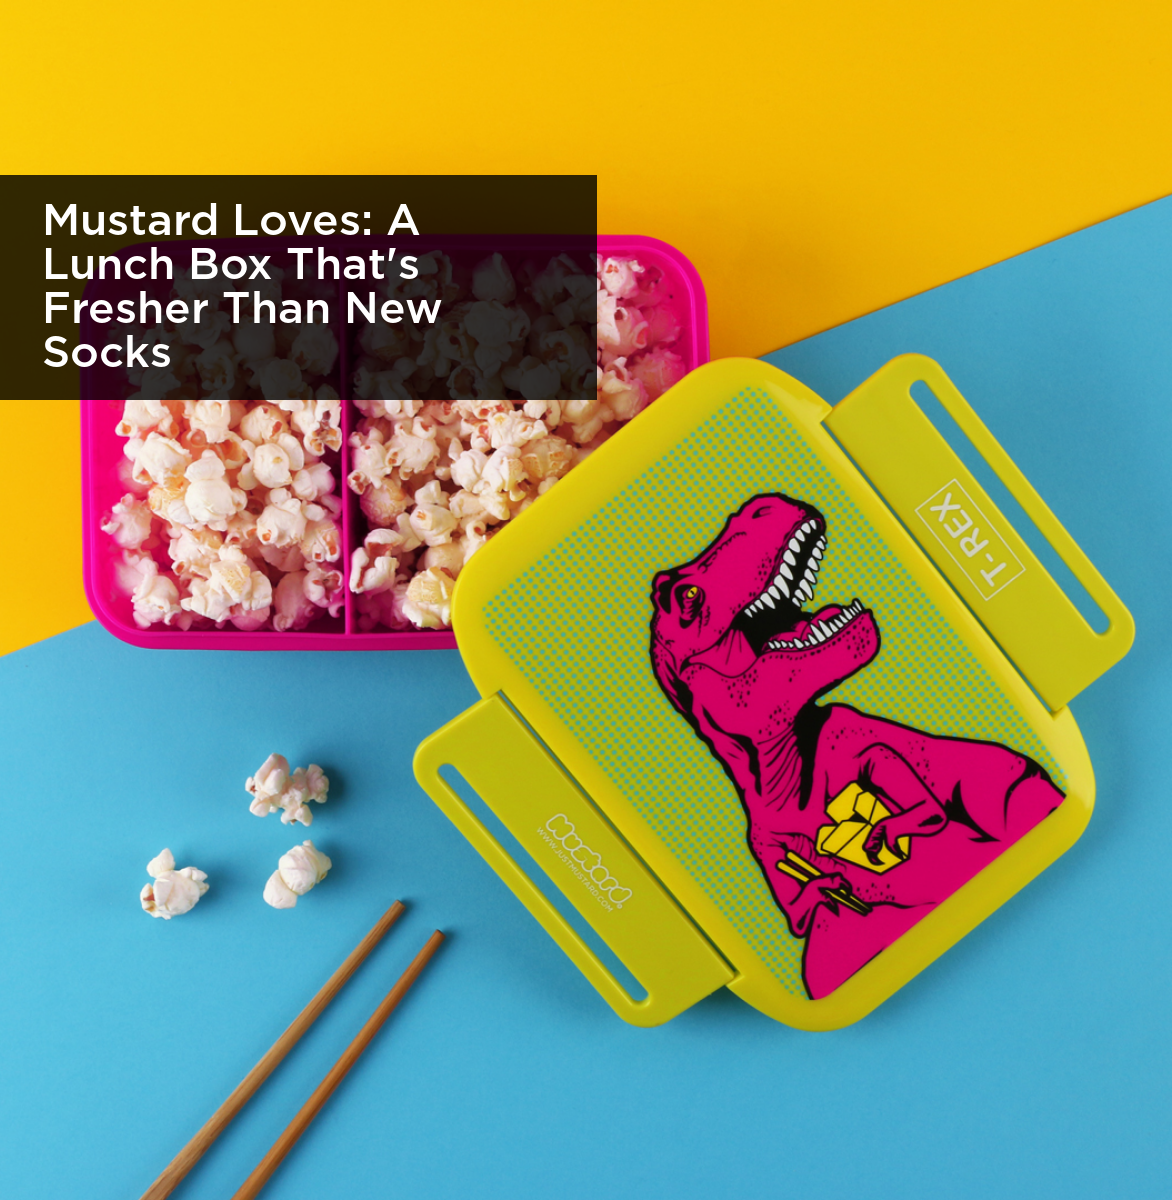 Mustard Loves A Lunch Box That's Fresher Than New Socks